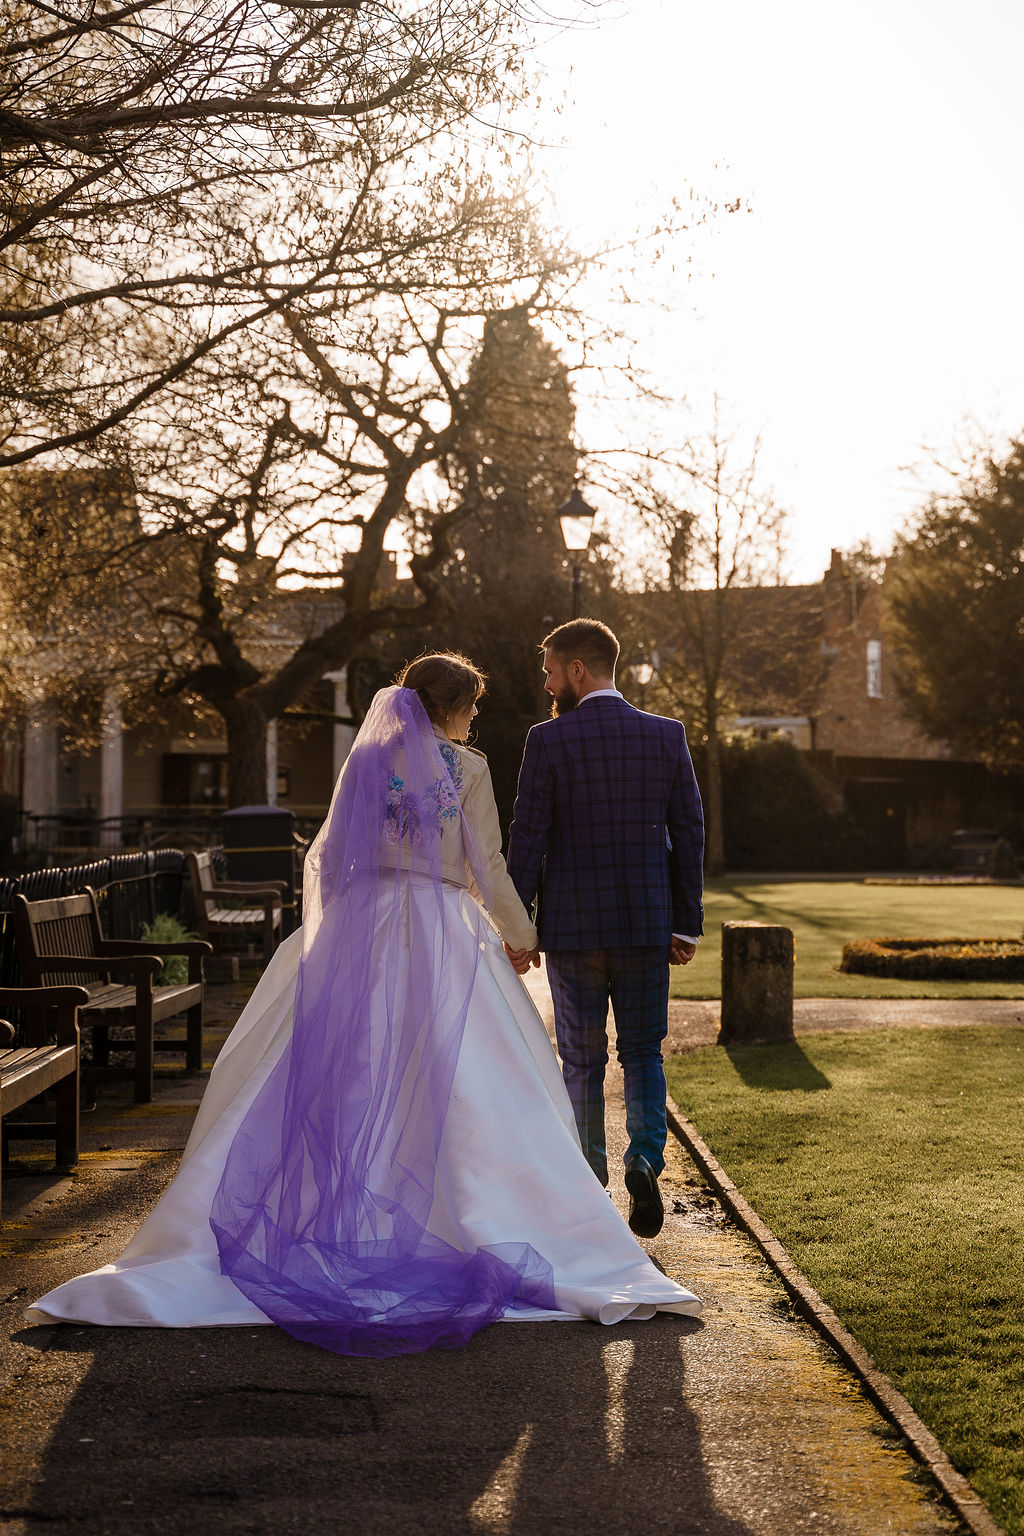 peacock themed wedding - peacock wedding - unique wedding colour scheme - quirky wedding - luxurious wedding - unique bridal veil - purple veil- ombre wedding veil- alternative bridal wear